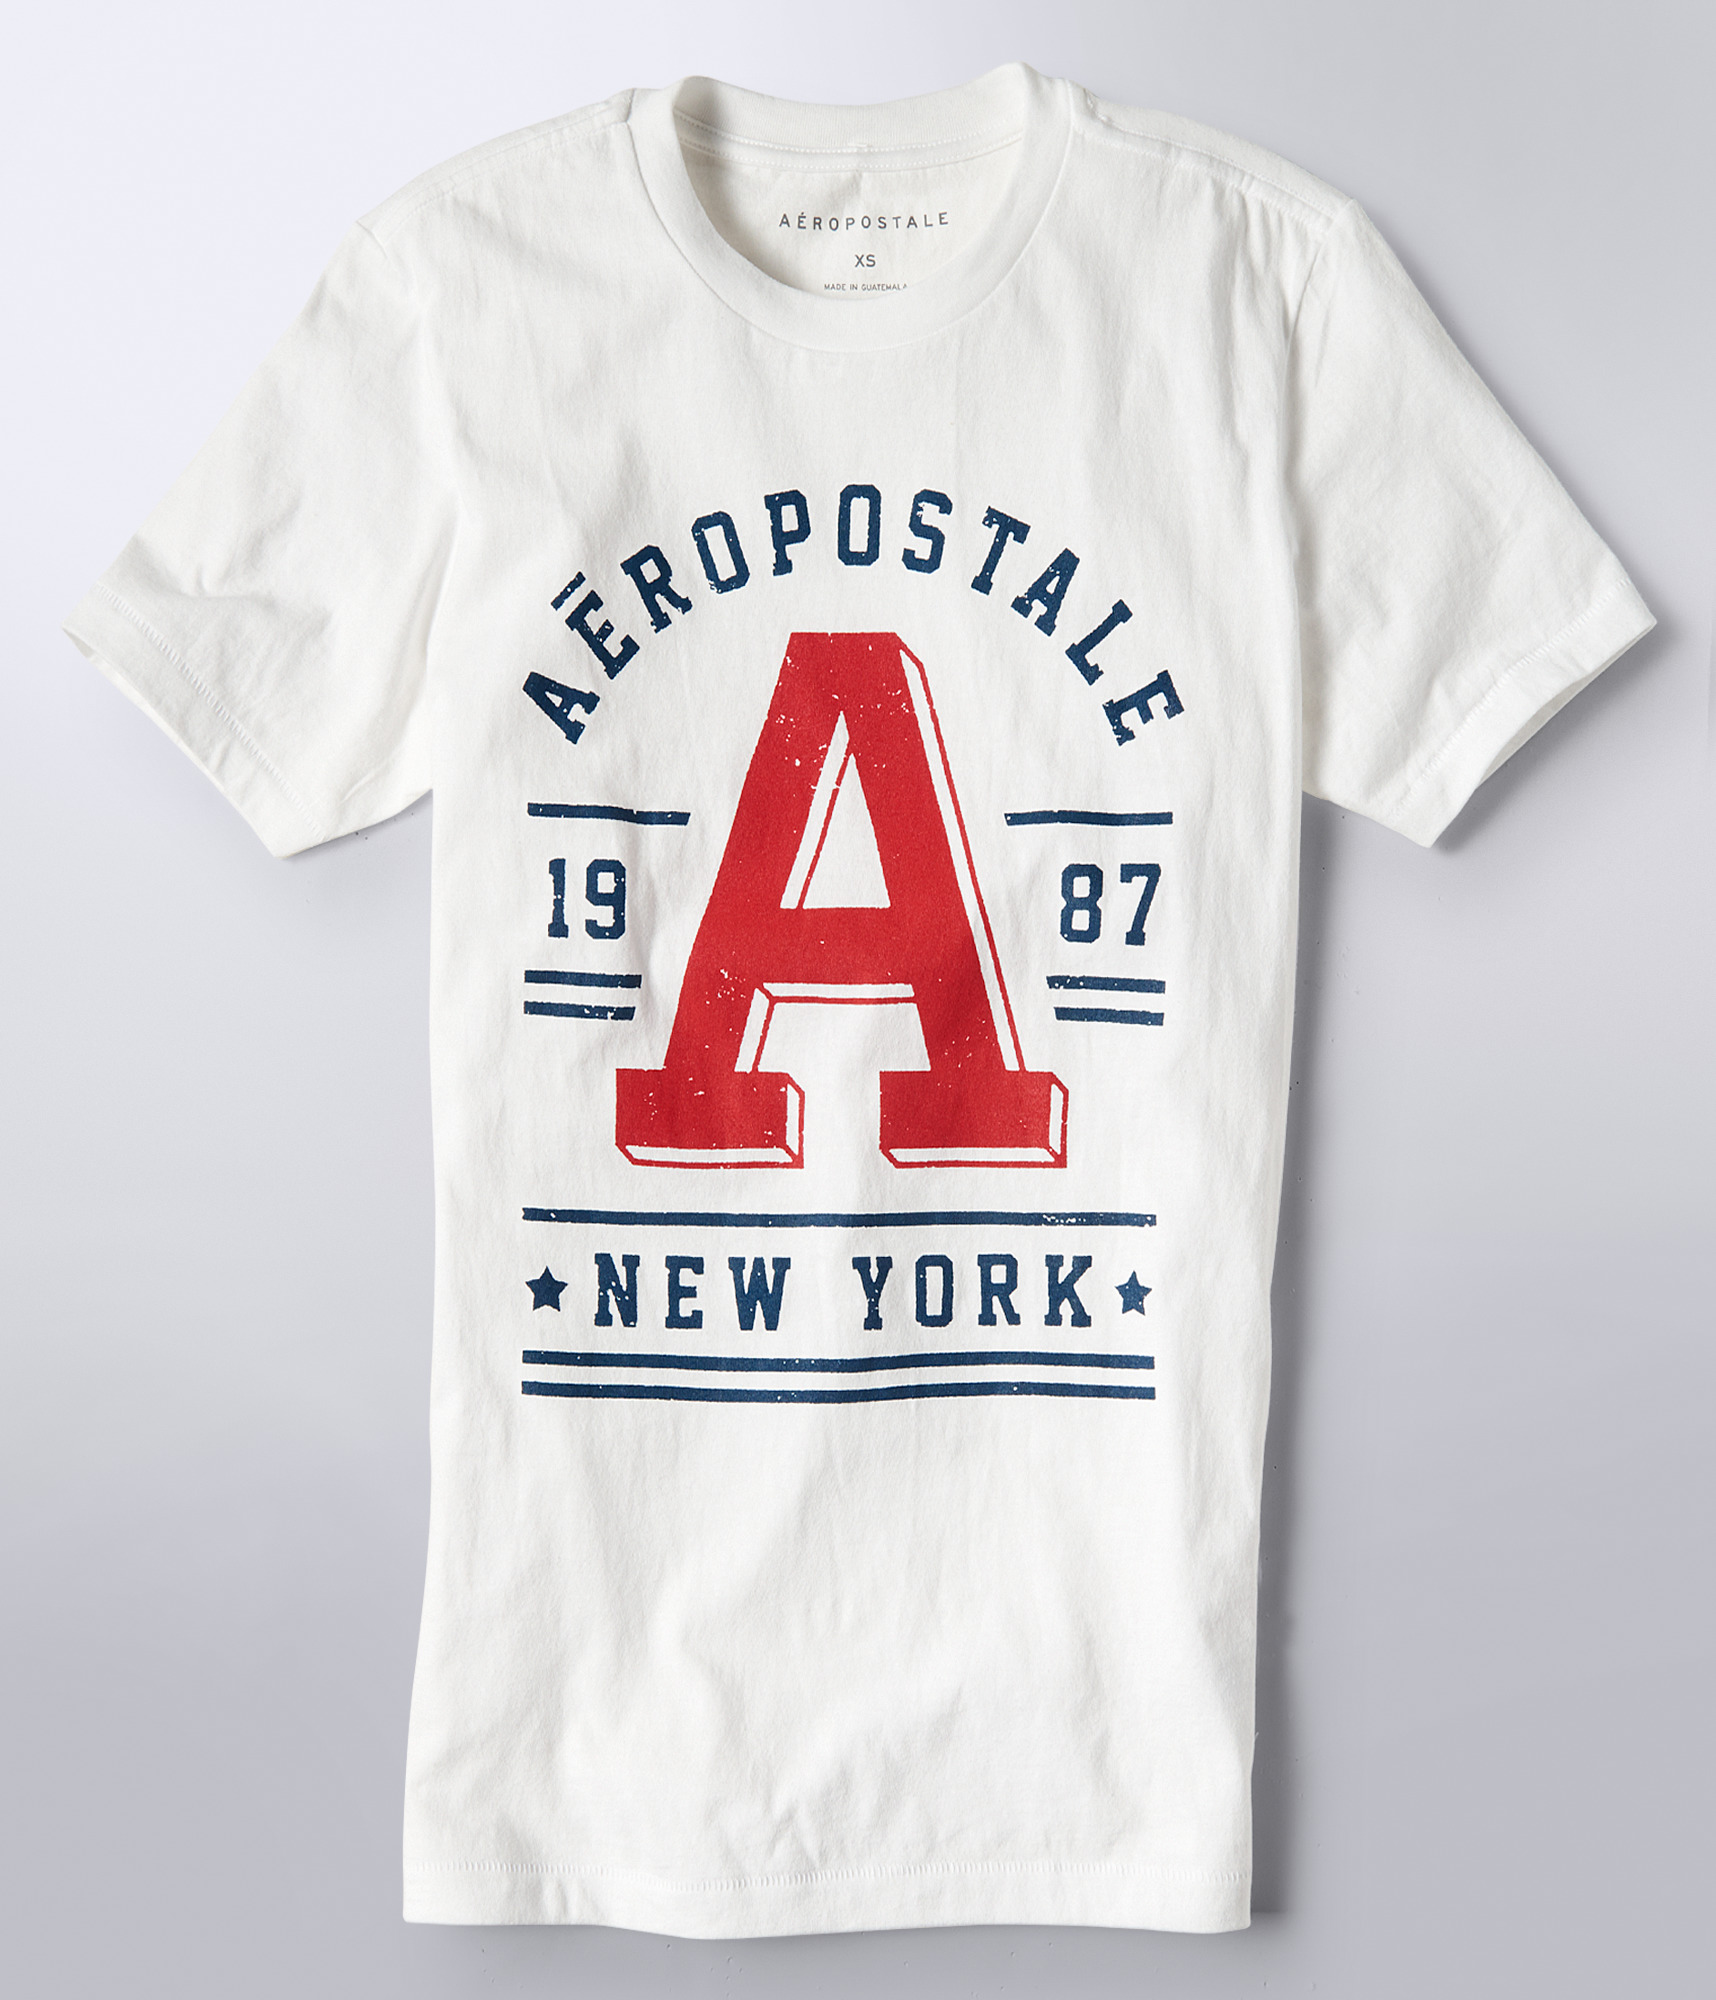 Ps aeropostale coupon code free shipping